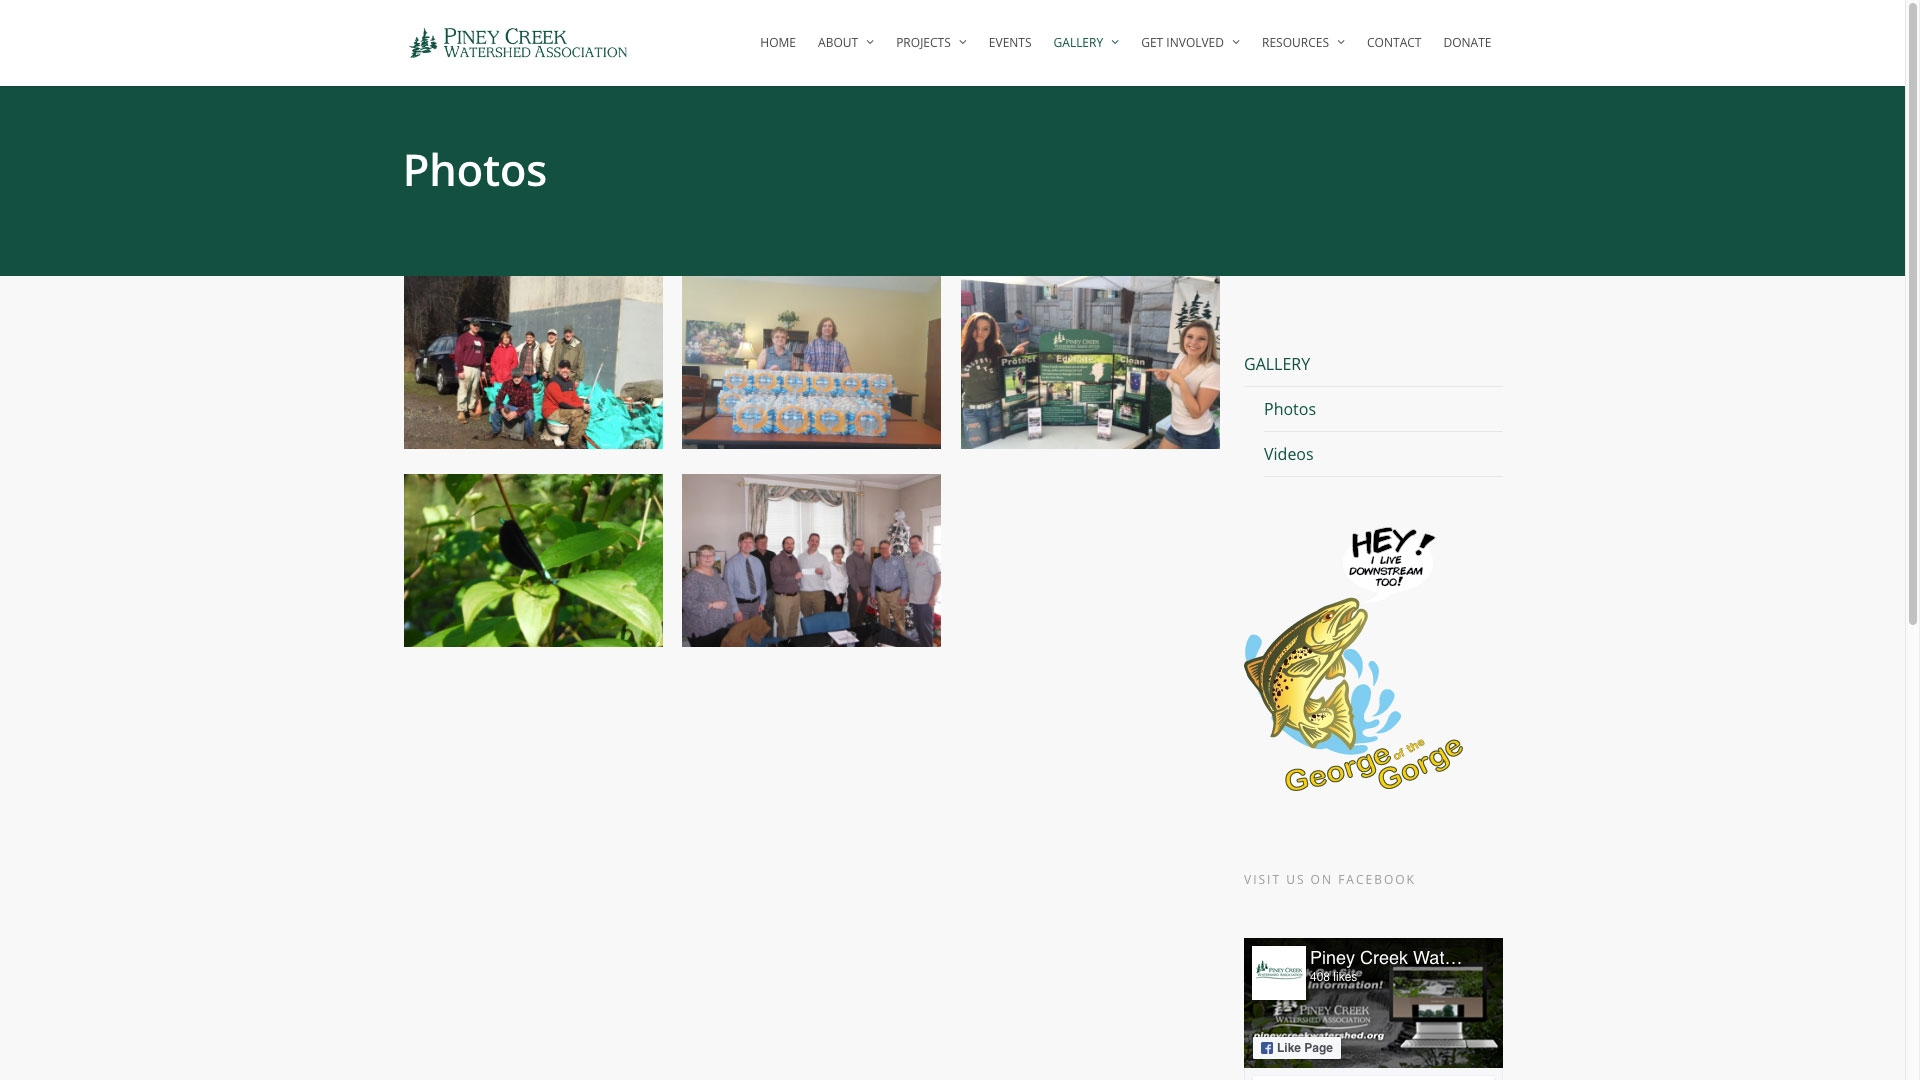 piney-creek-photos-web-design